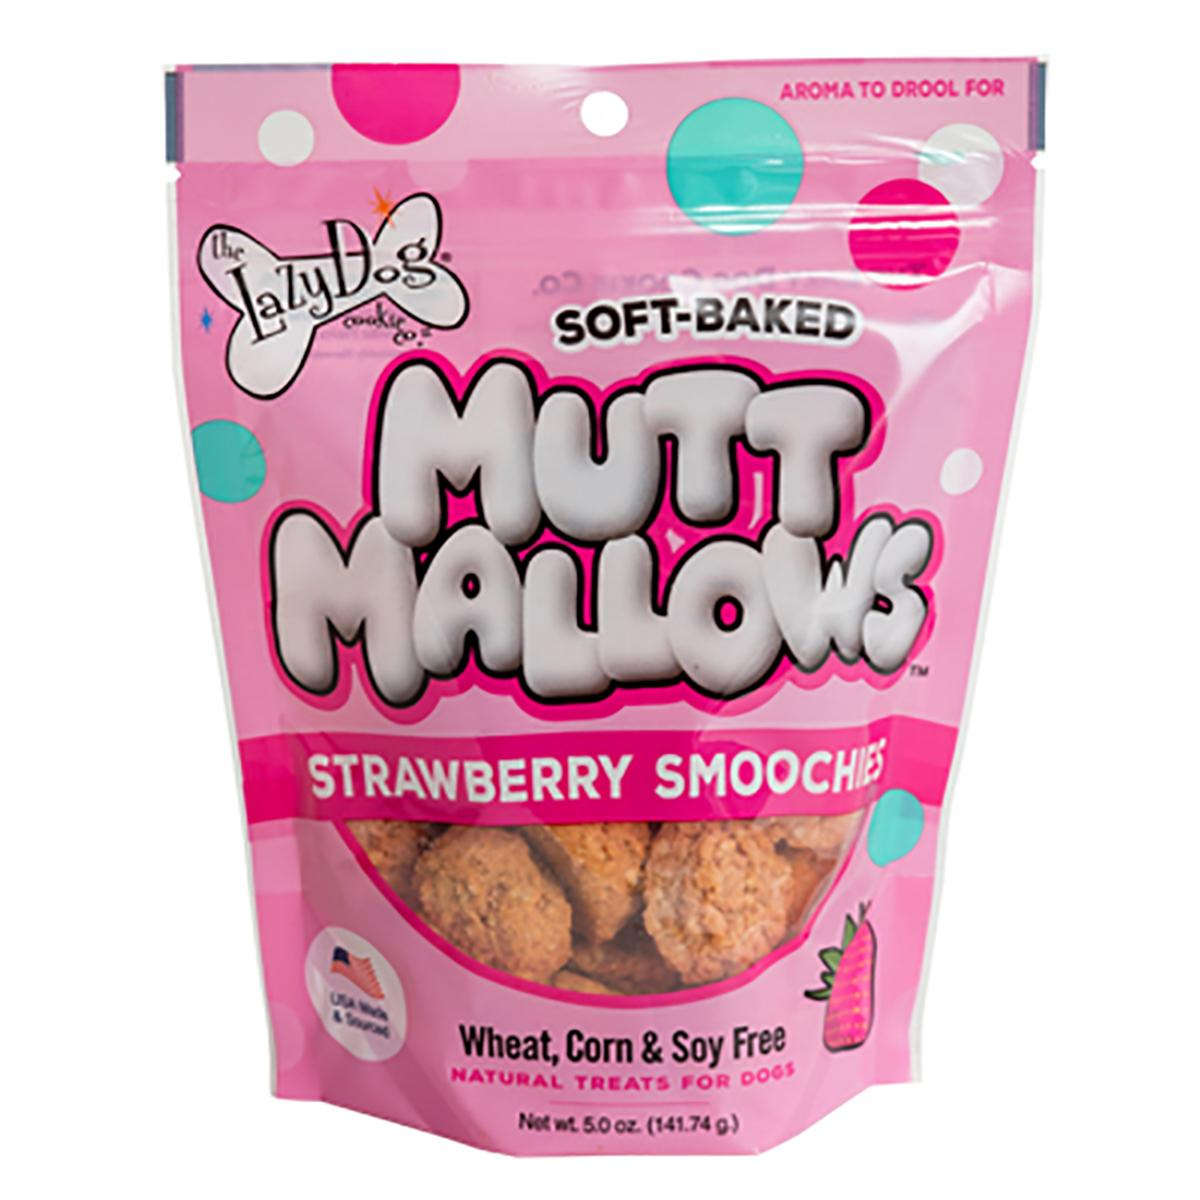 The Lazy Dog Mutt Mallow Soft-Baked Dog Treats - Strawberry Smoochies